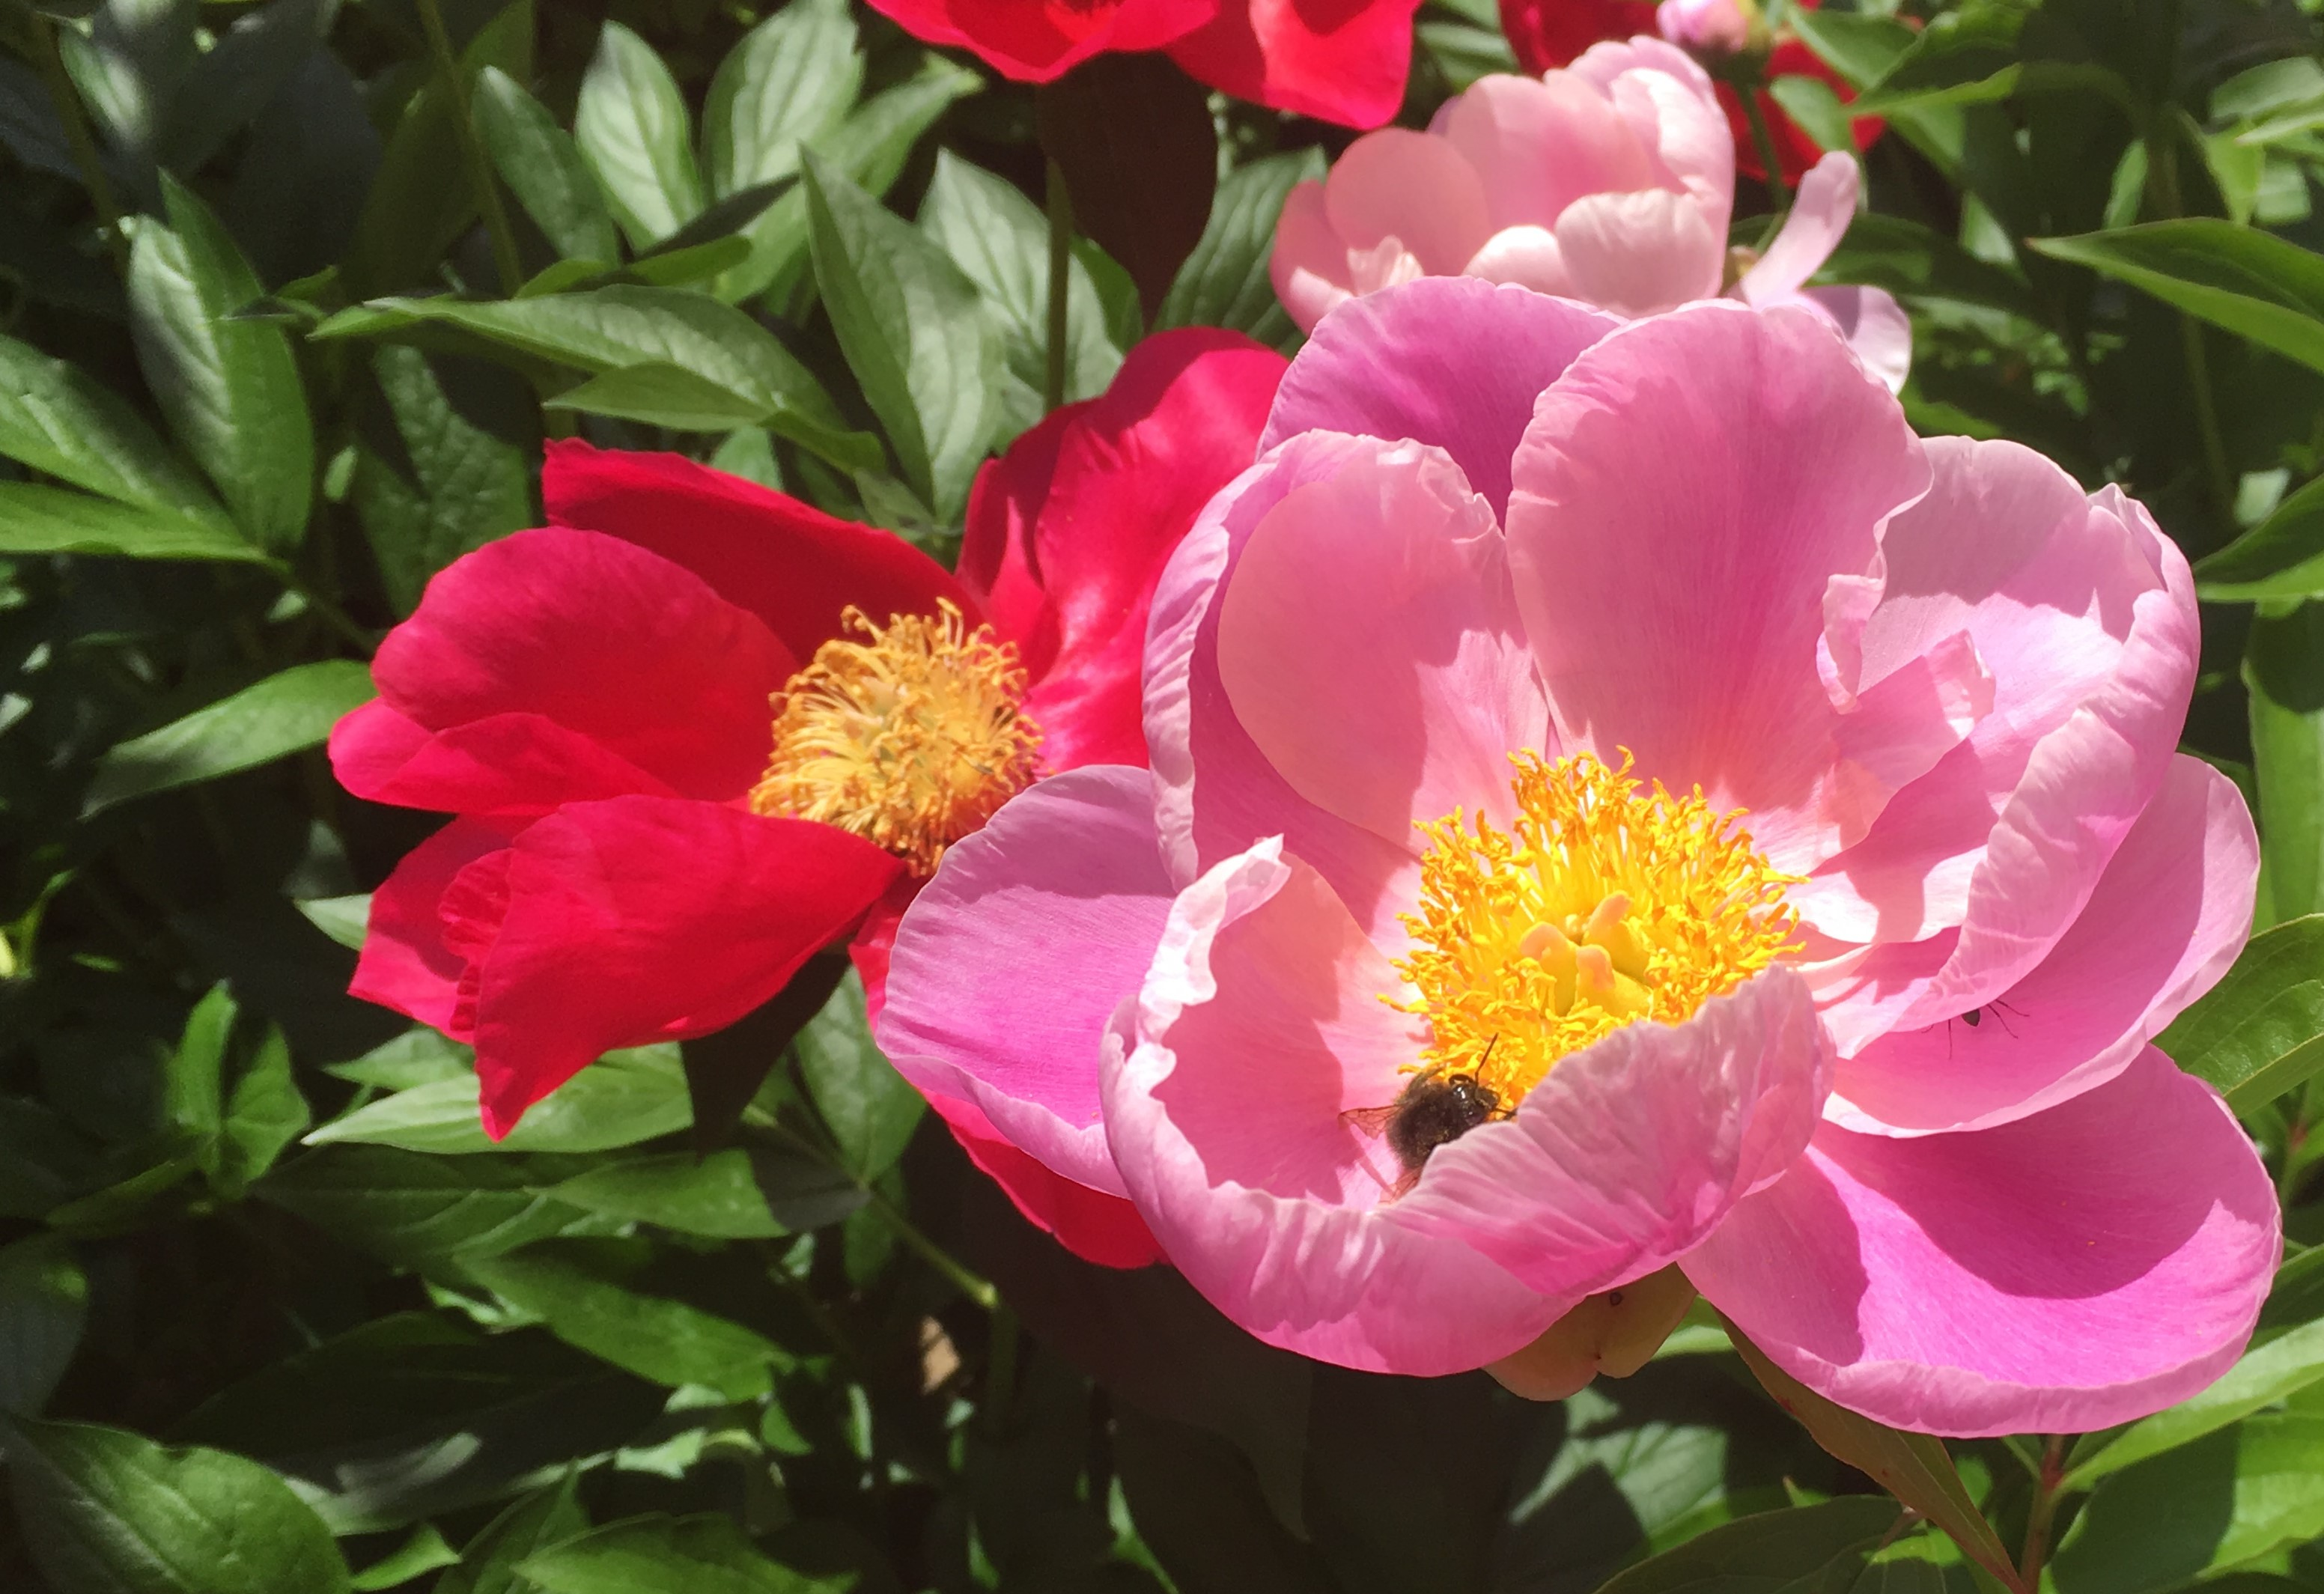 pink and red peonies with a bee sitting in the center of the pink one